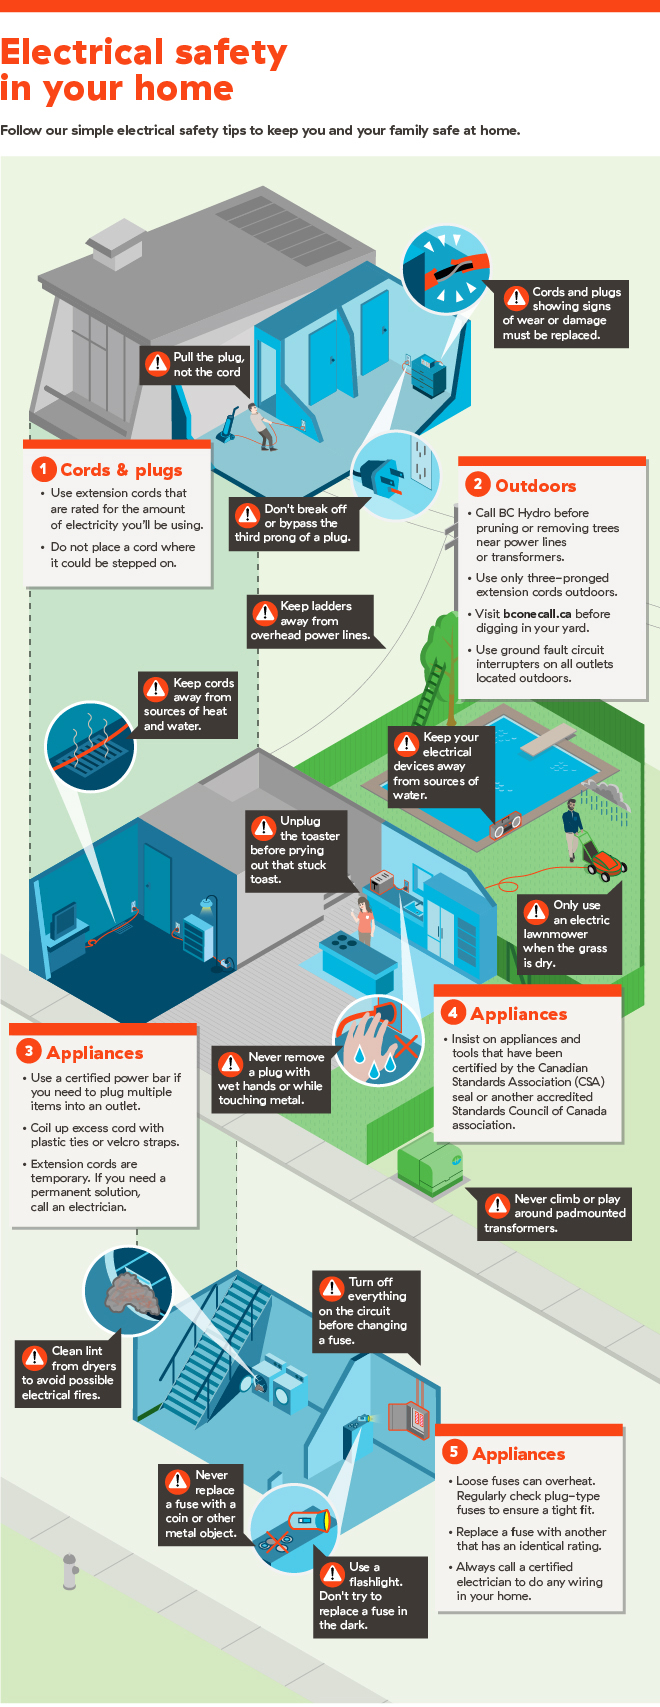 Electrical safety in your home infographic